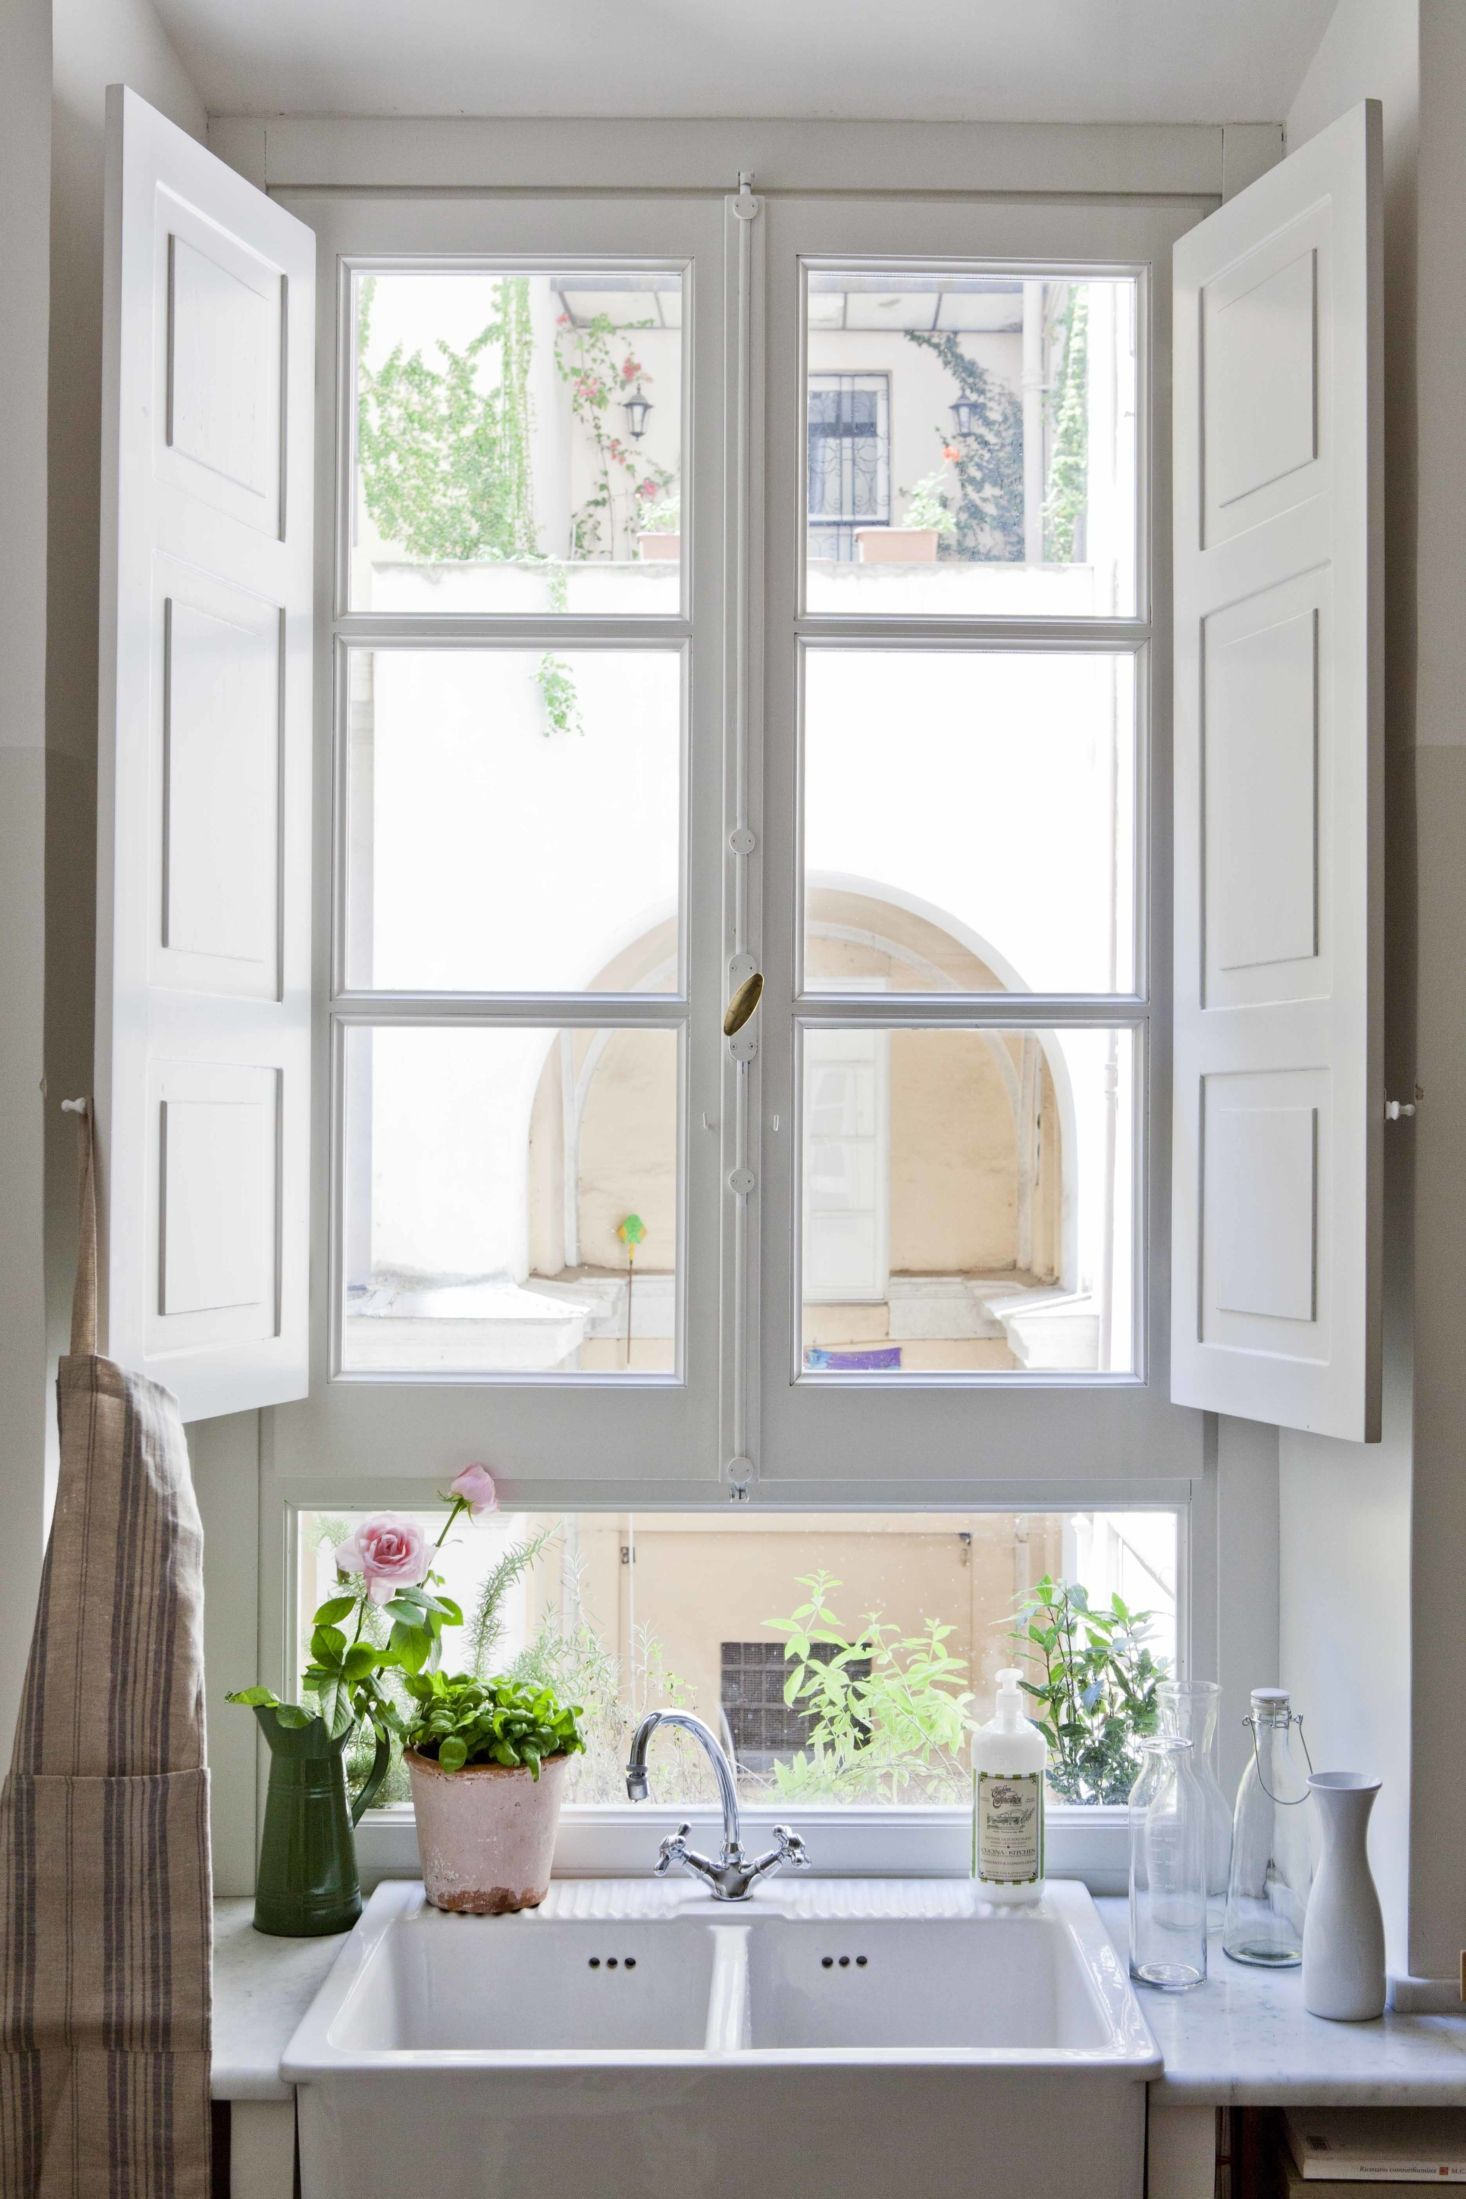 The architects positioned the Ikea sink beneath the window